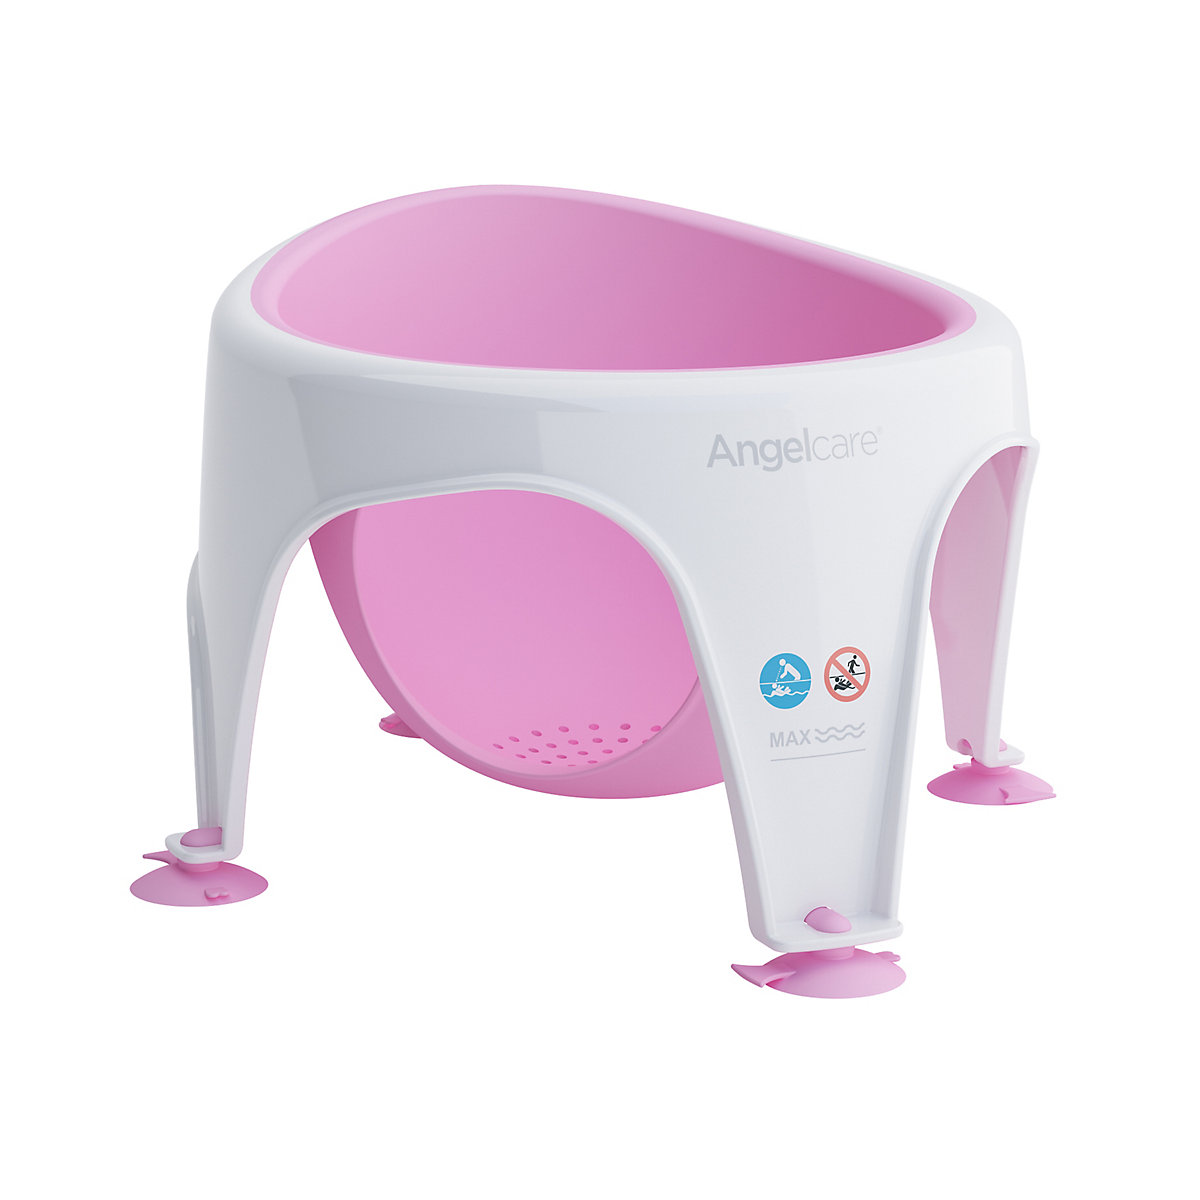 Angelcare soft-touch bath seat - pink